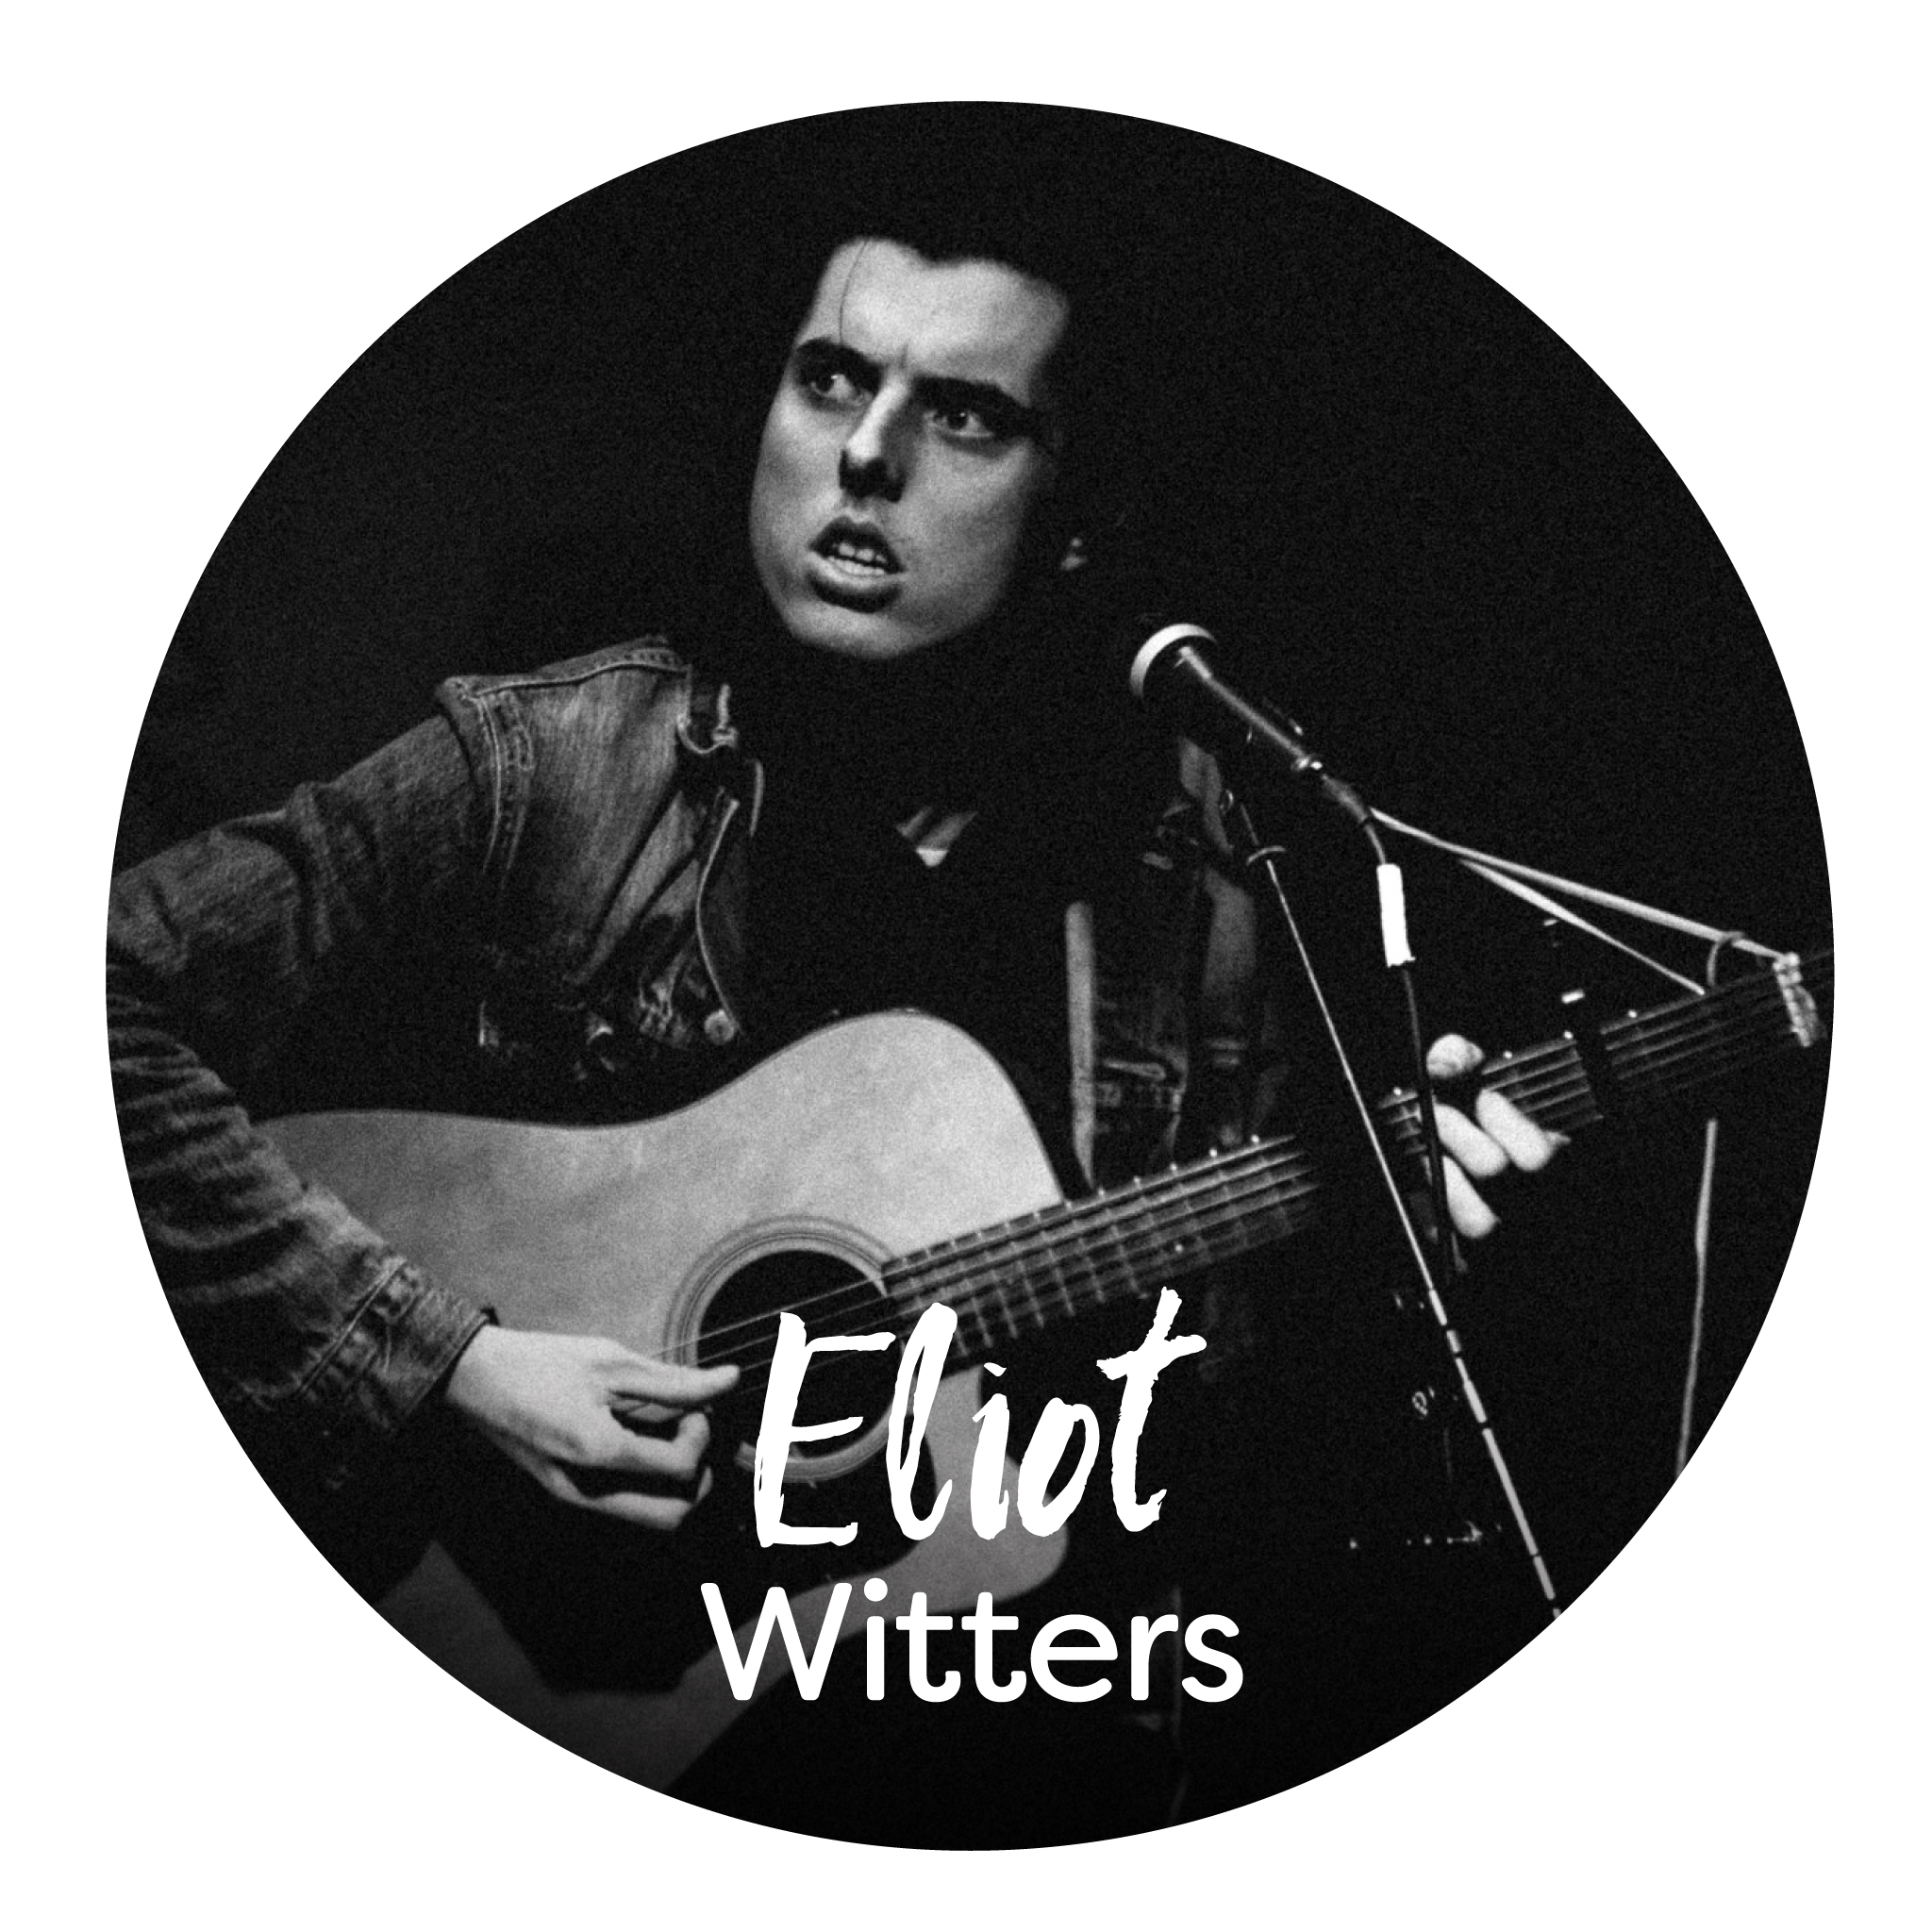 A picture of Eliot Witters